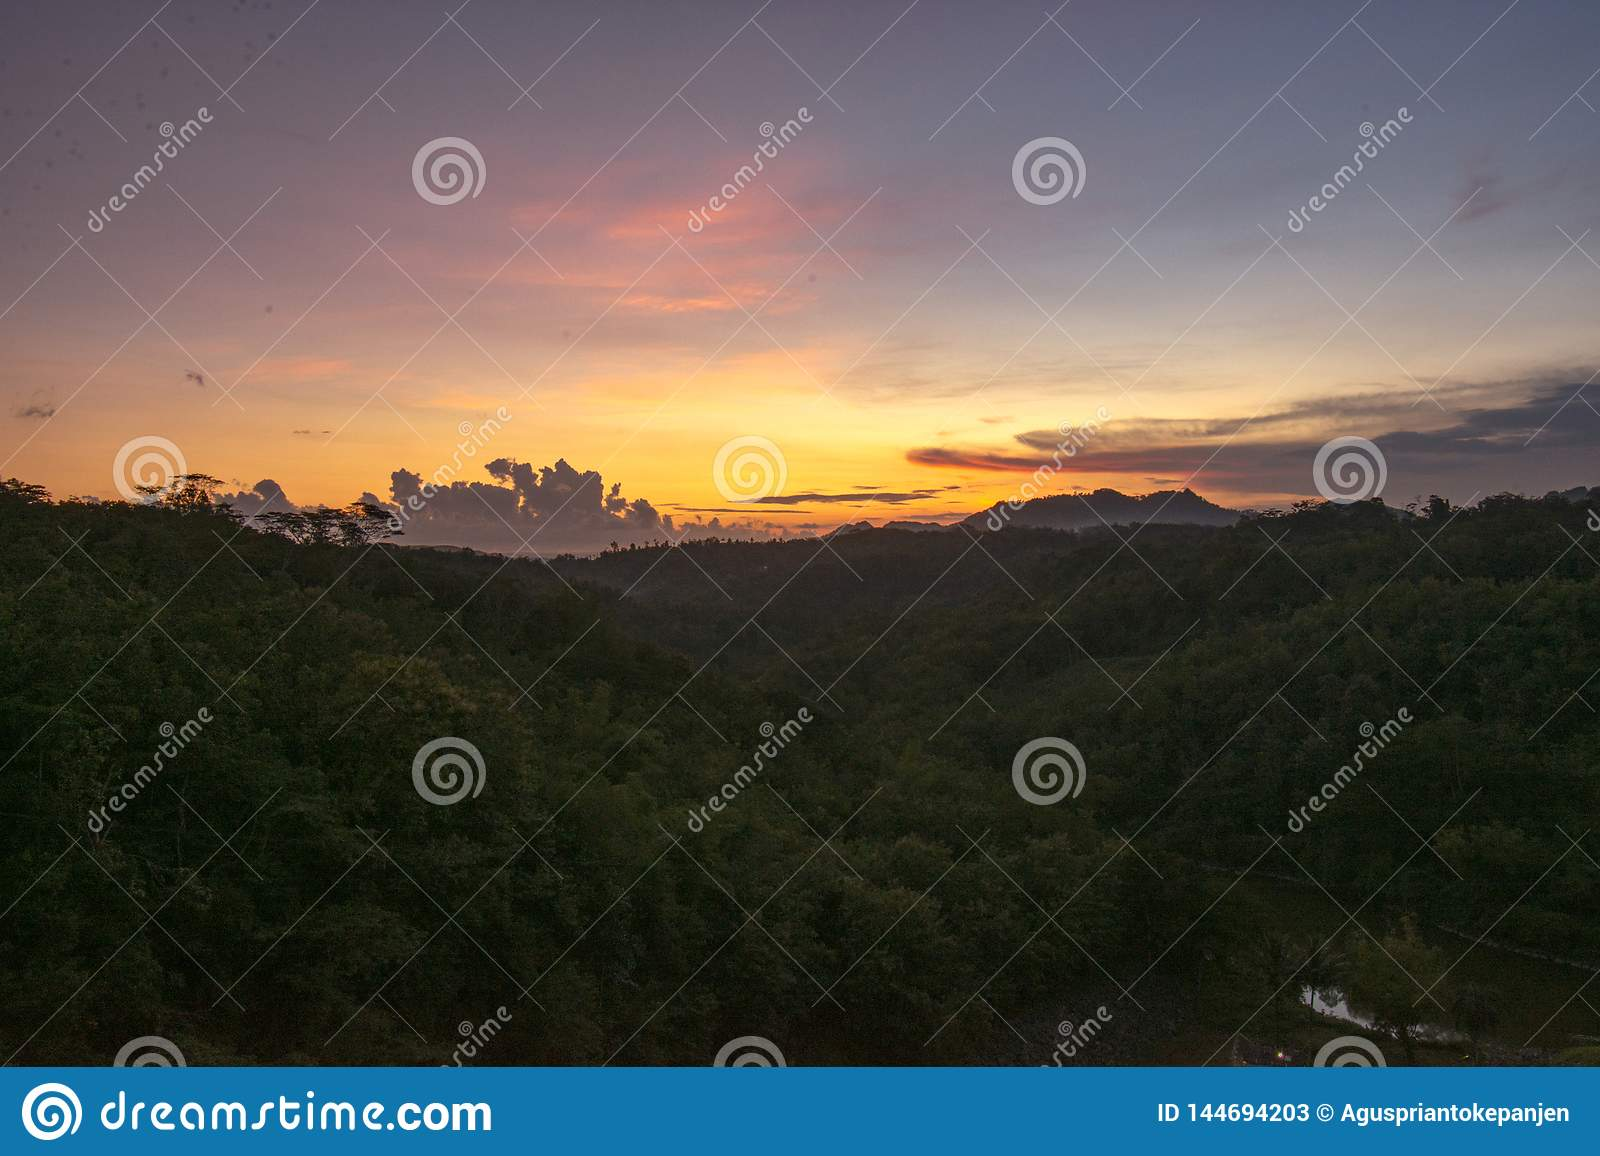 The sun sets over the hills